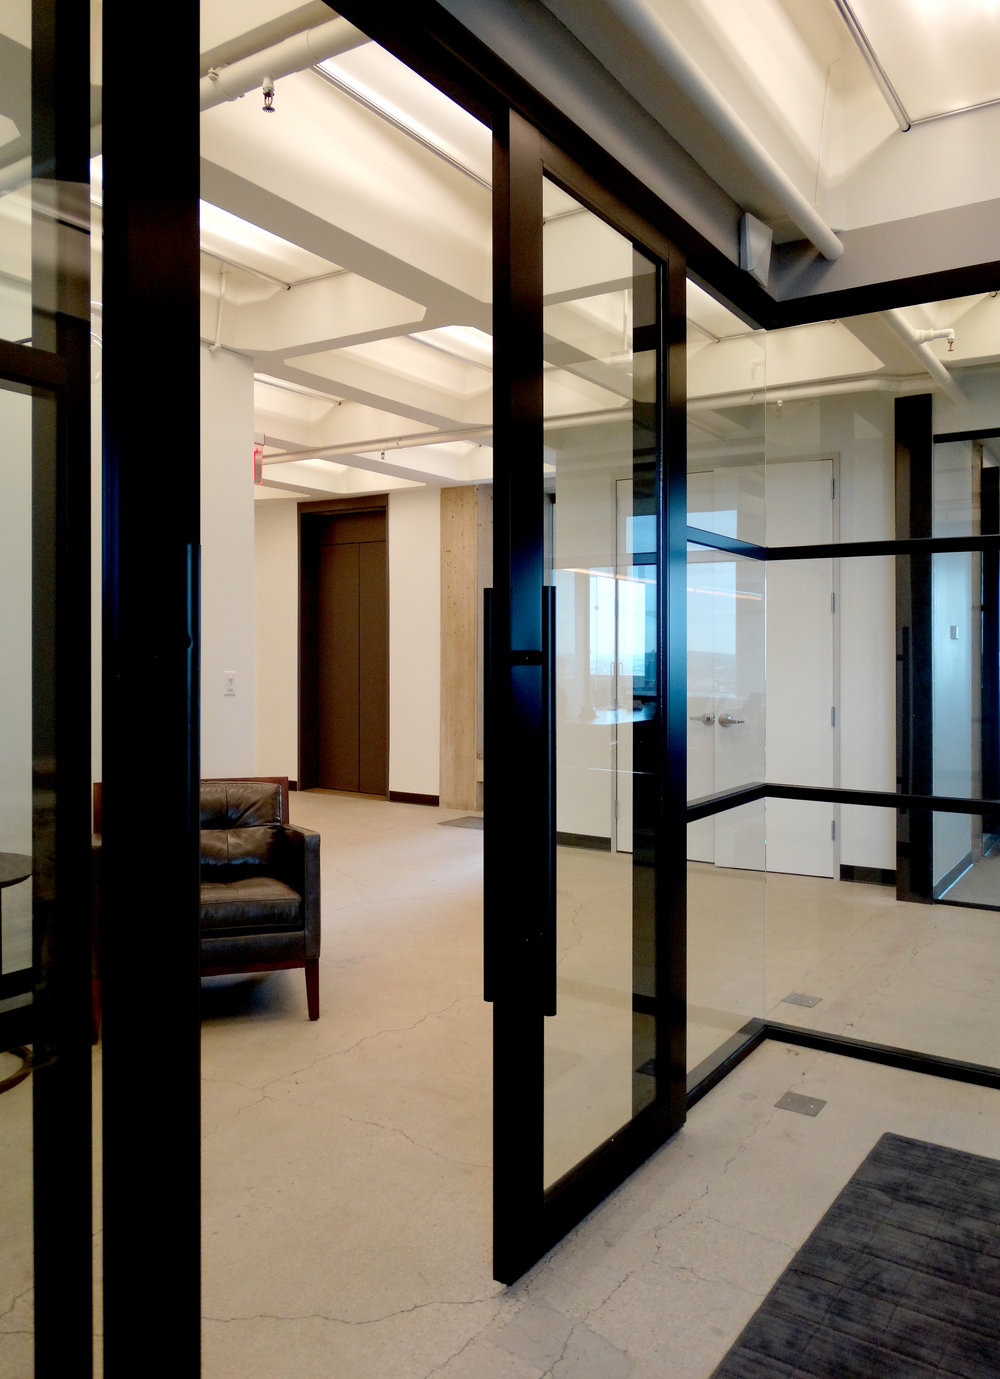 Encase Black Aluminum Framed Glass Doors Black Ladder Pulls - Spaceworks AI.JPG